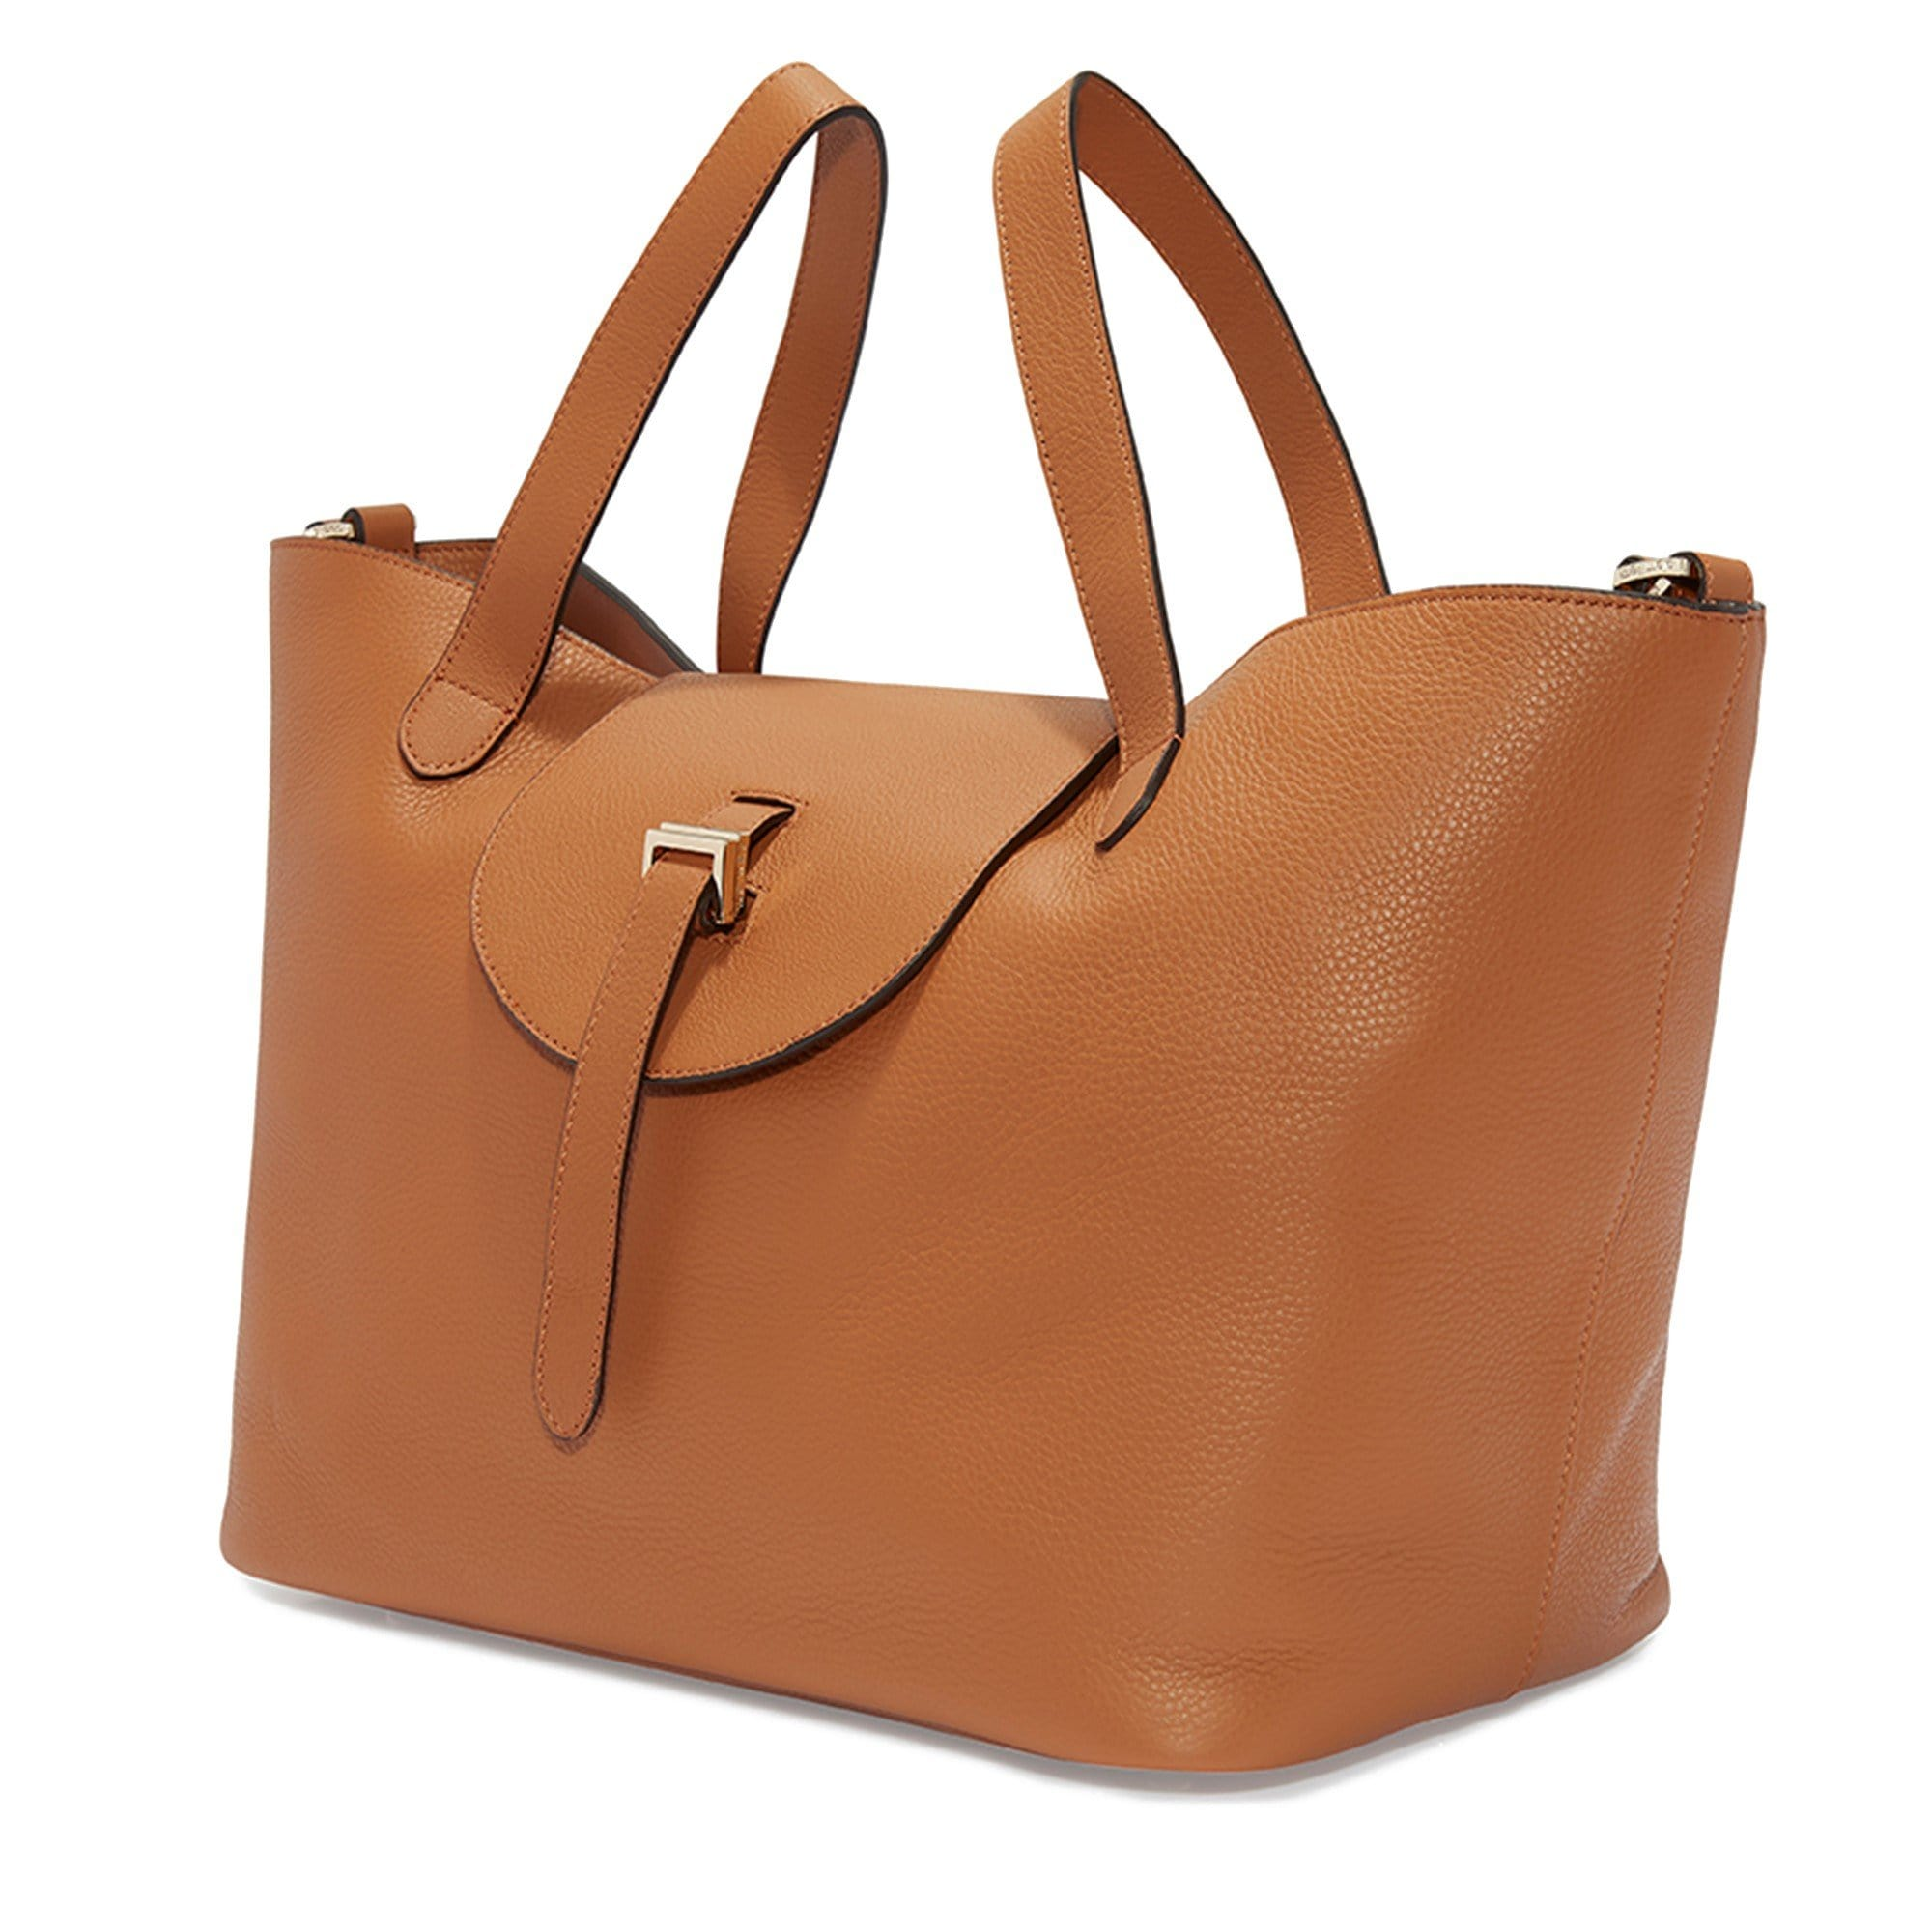 b85b13c37dde Thela Tan Tote Bag - Italian Luxury Handbag – meli melo Official